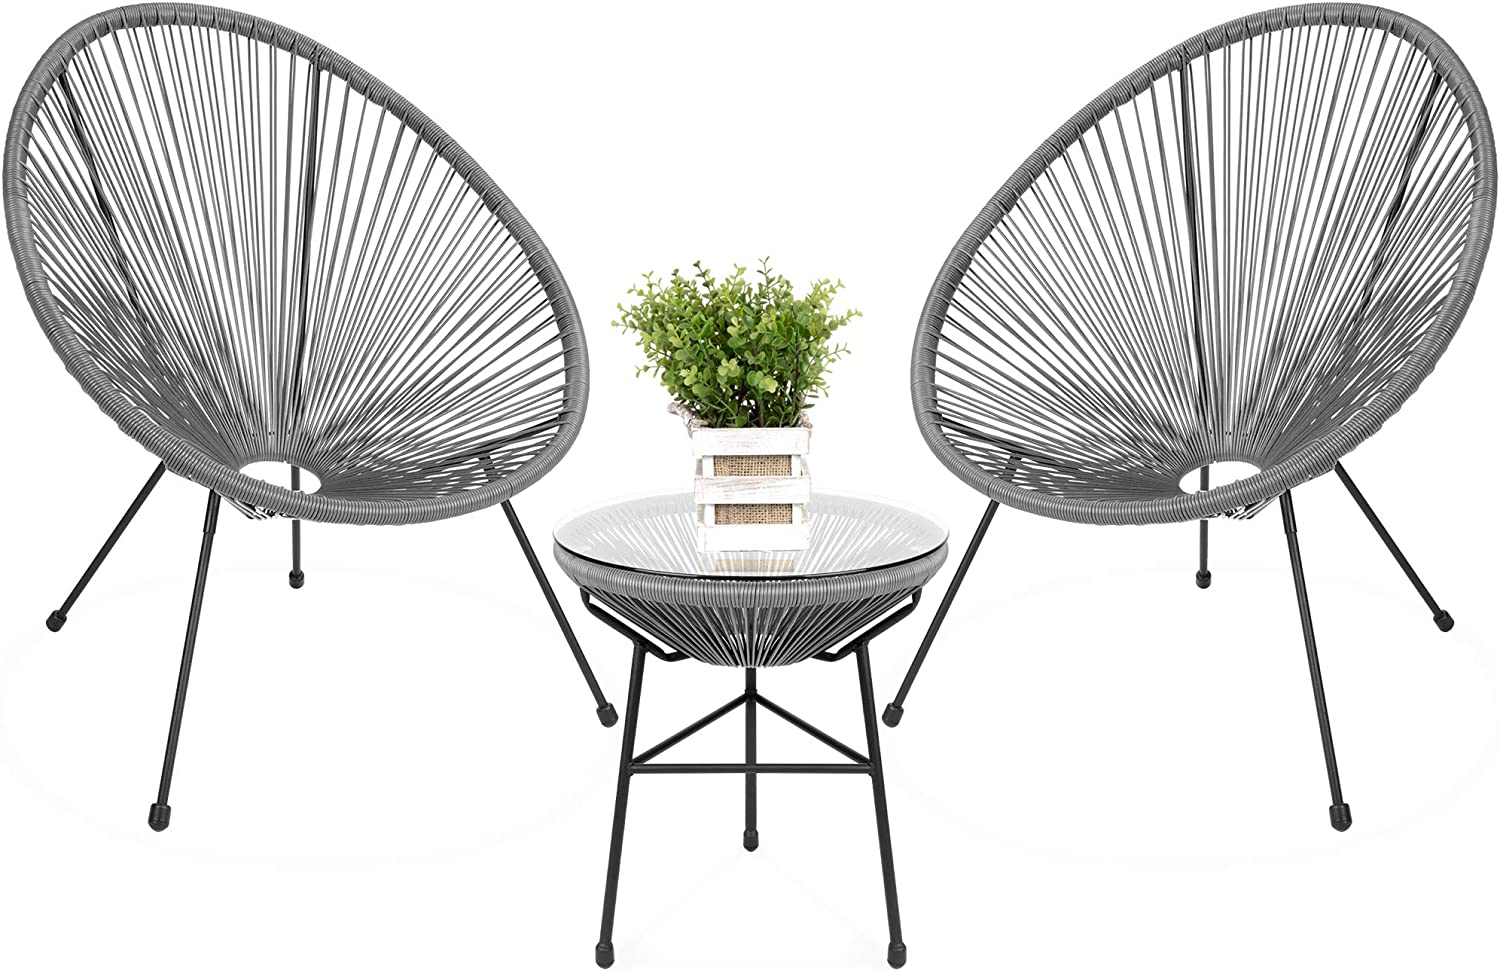 Best Choice Products 3-Piece Outdoor Acapulco All-Weather Patio Conversation Bistro Set w/Plastic Rope, Glass Top Table and 2 Chairs - Gray